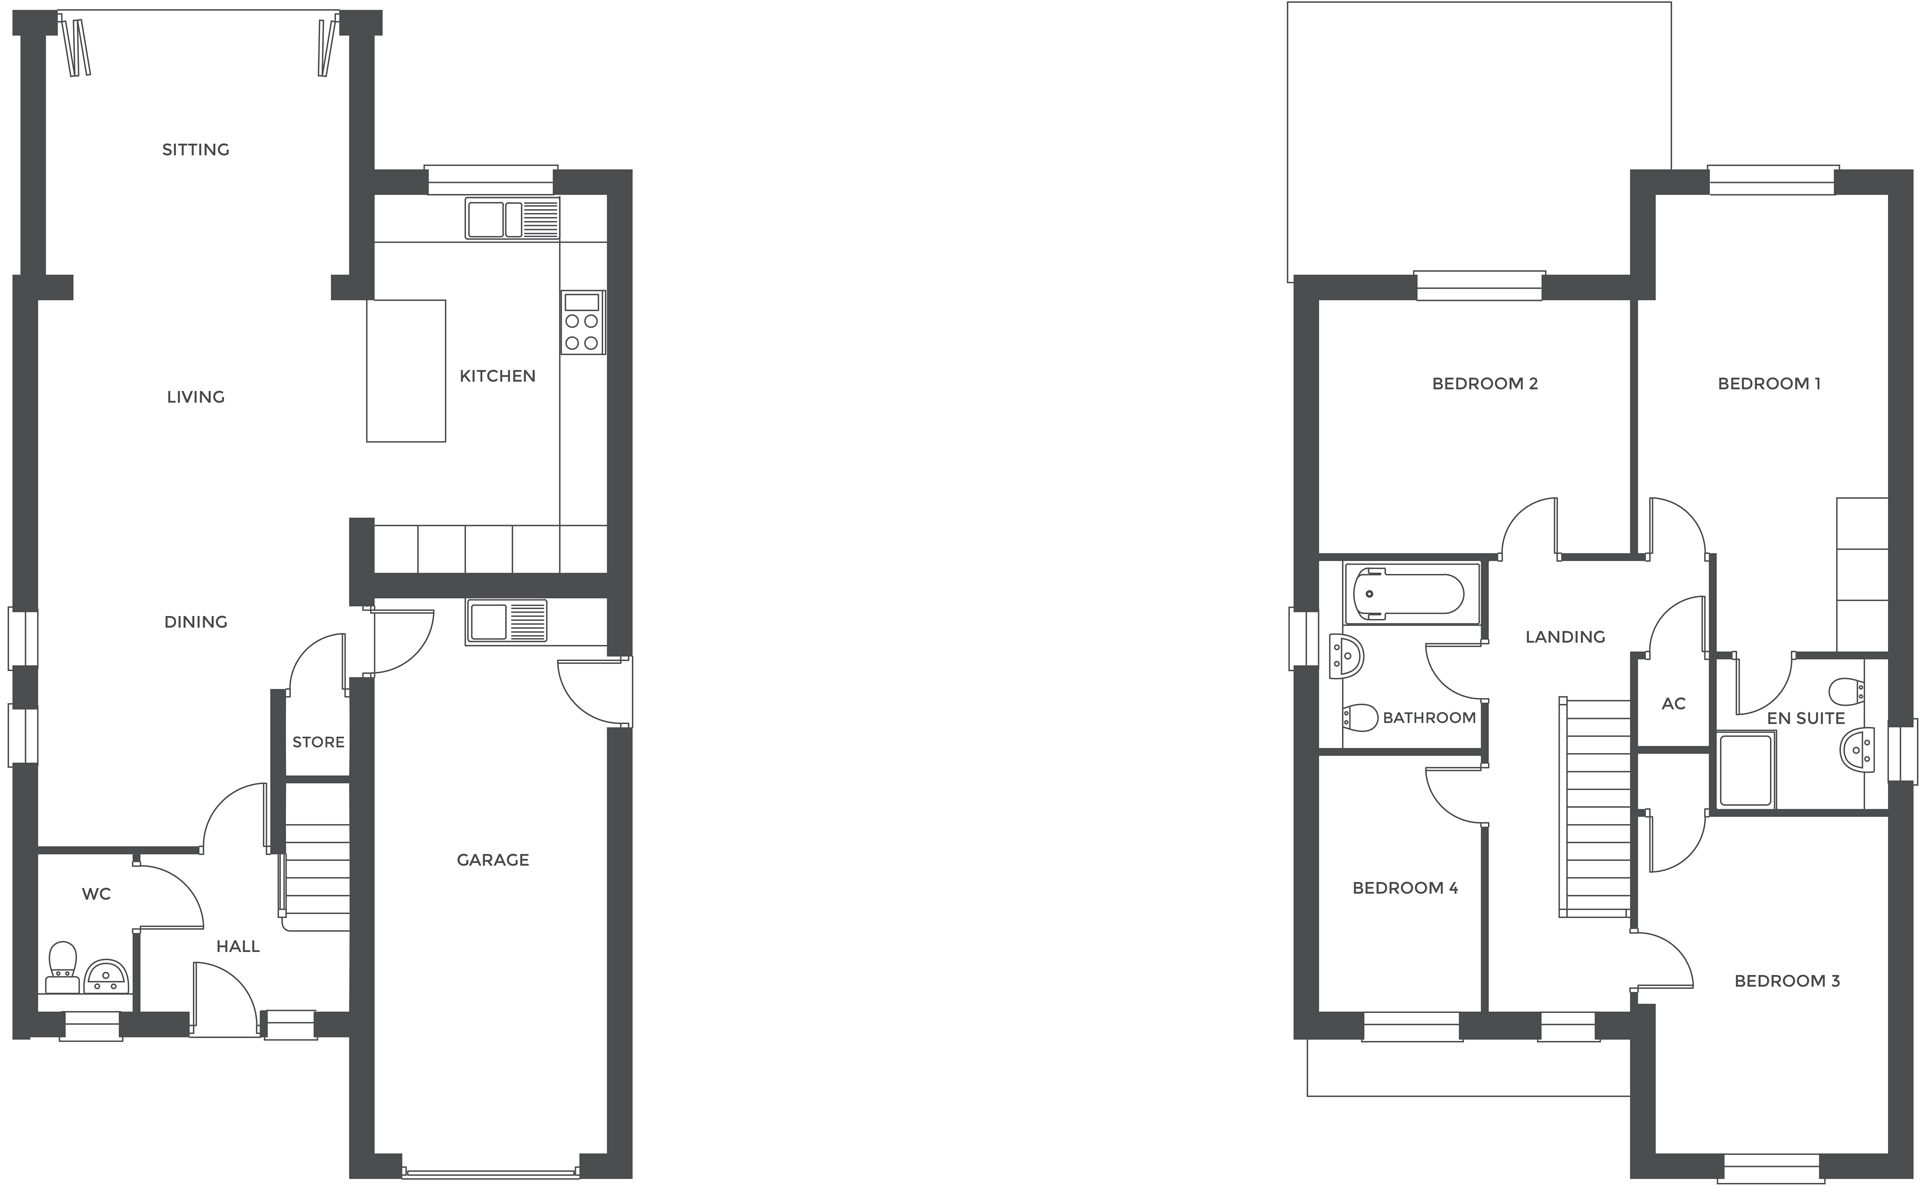 Hathorn Manor, Plot 4 floor plan